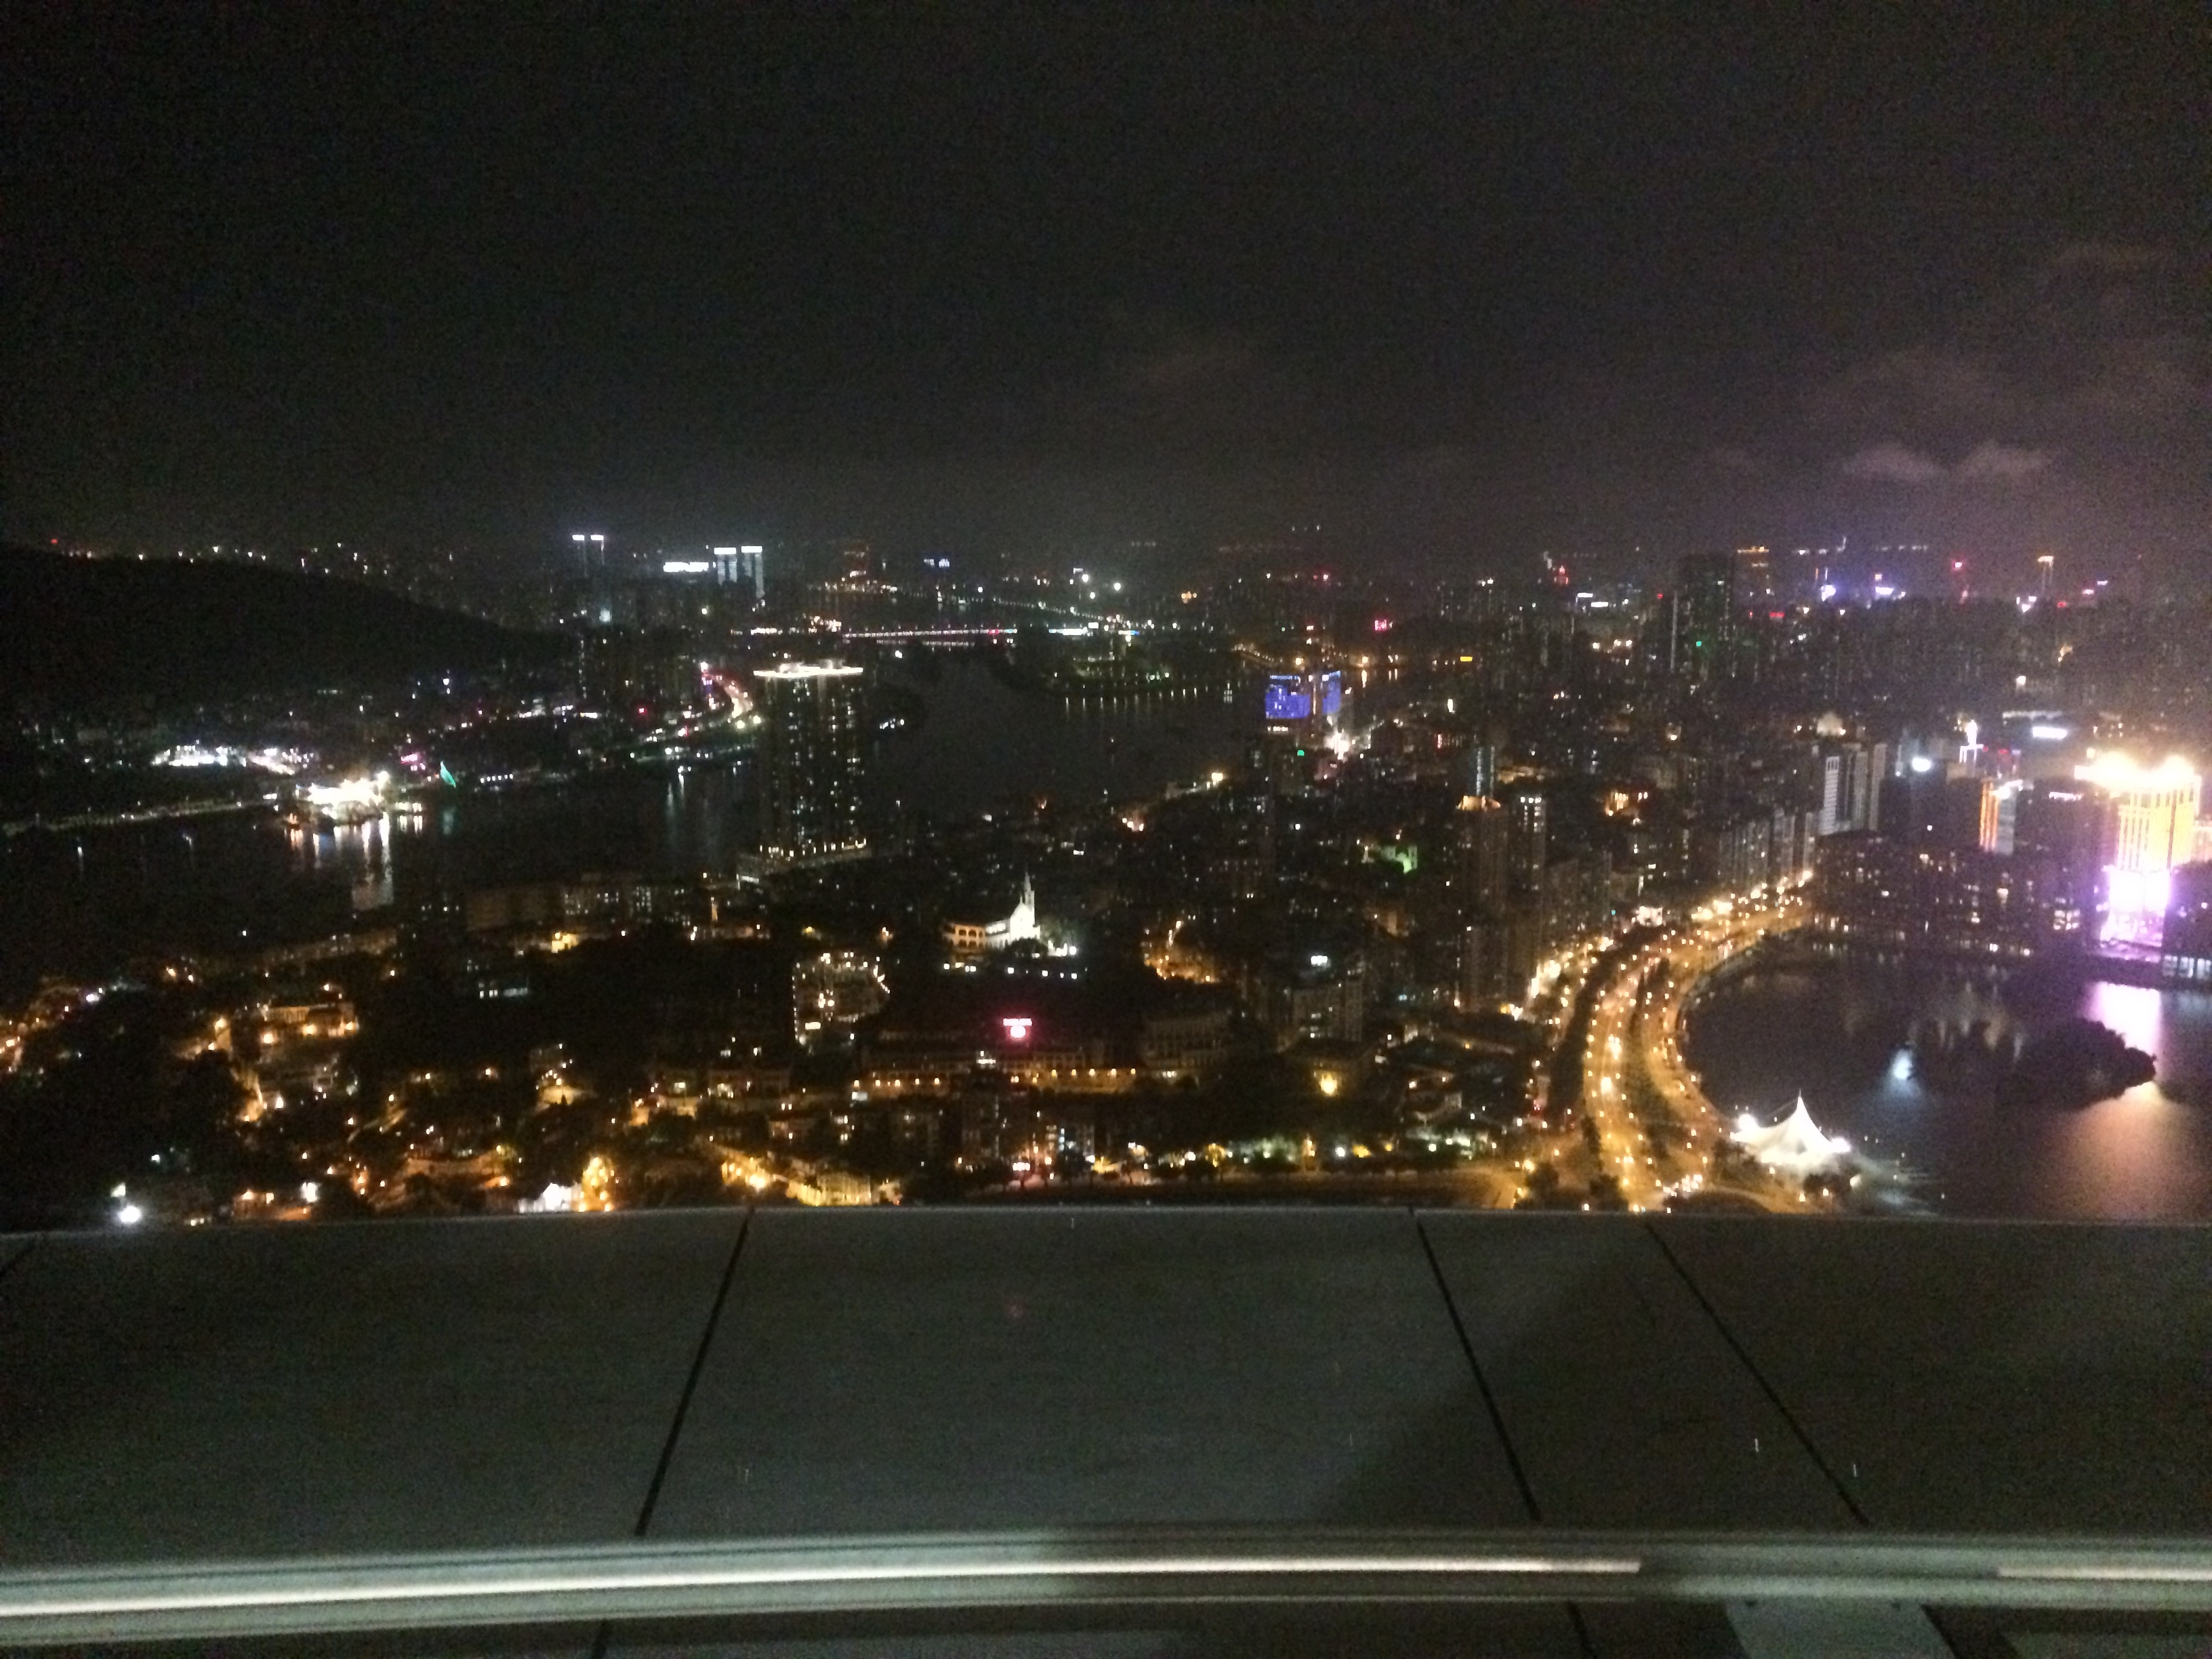 Taken at the Macau Tower.